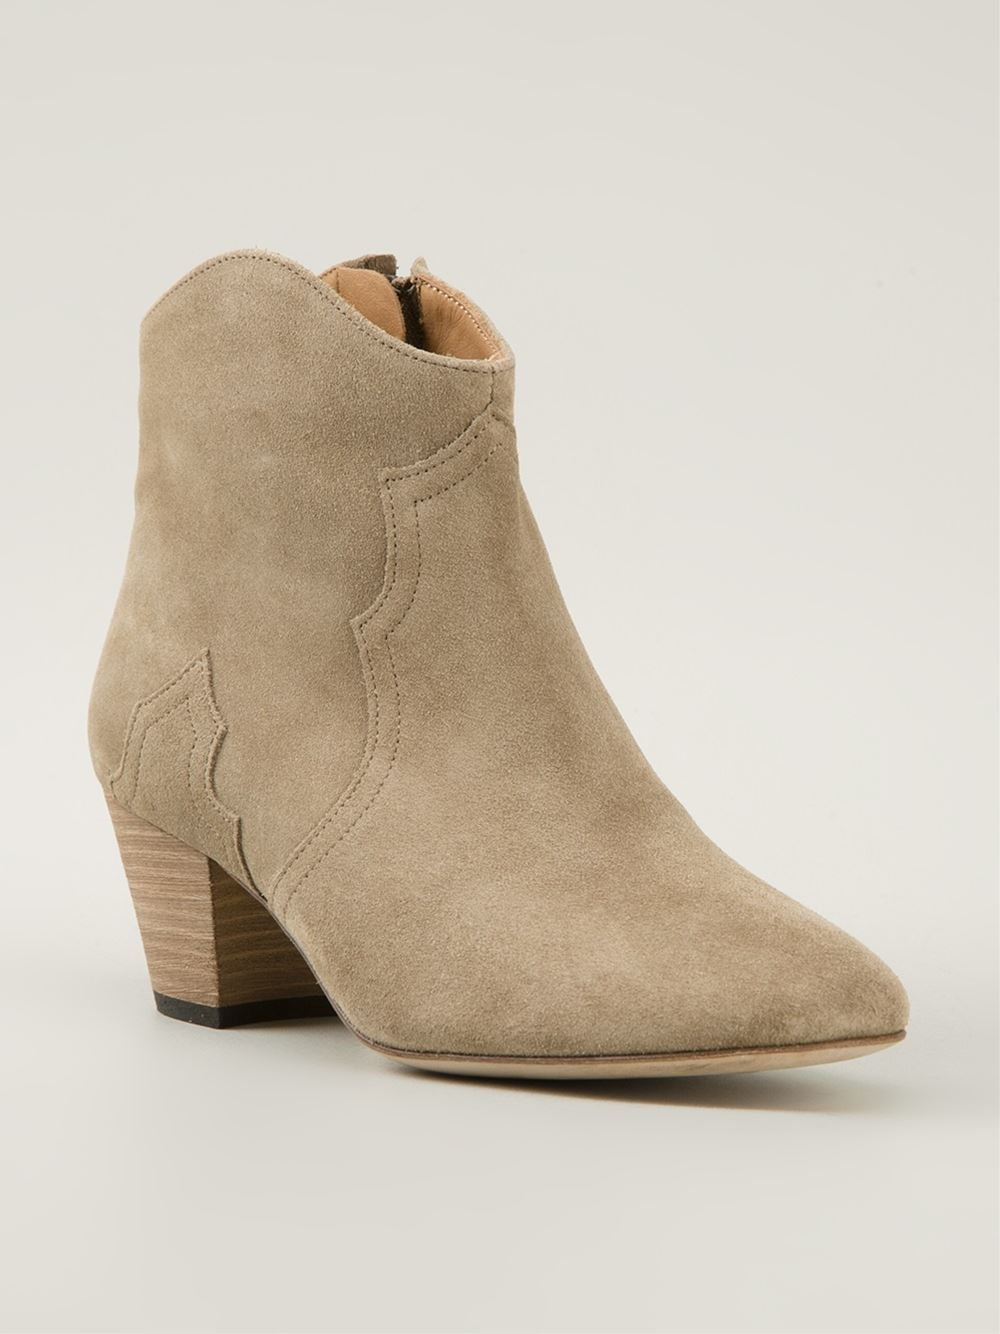 Isabel Marant 'dicker' Ankle Boots - The Corner Berlin - Farfetch.com